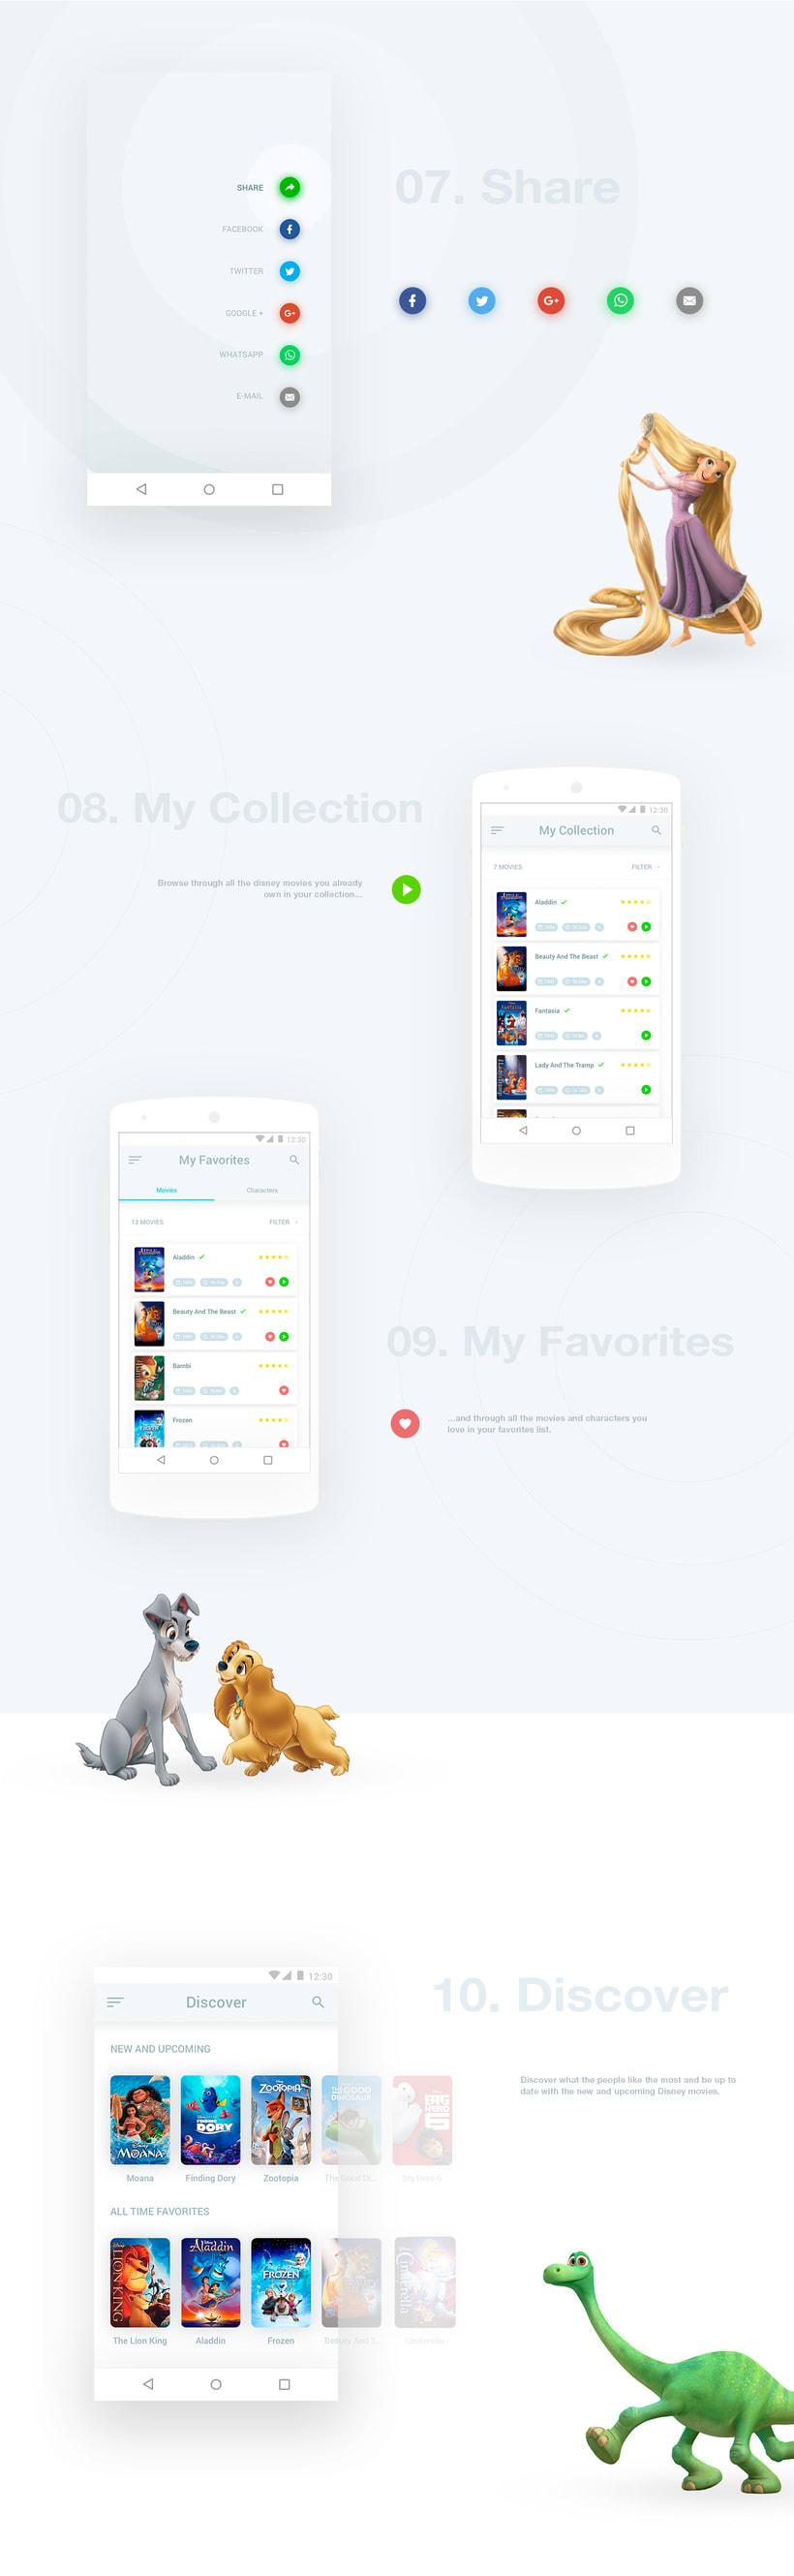 Disney Movies Anywhere - Mobile App Redesign 5